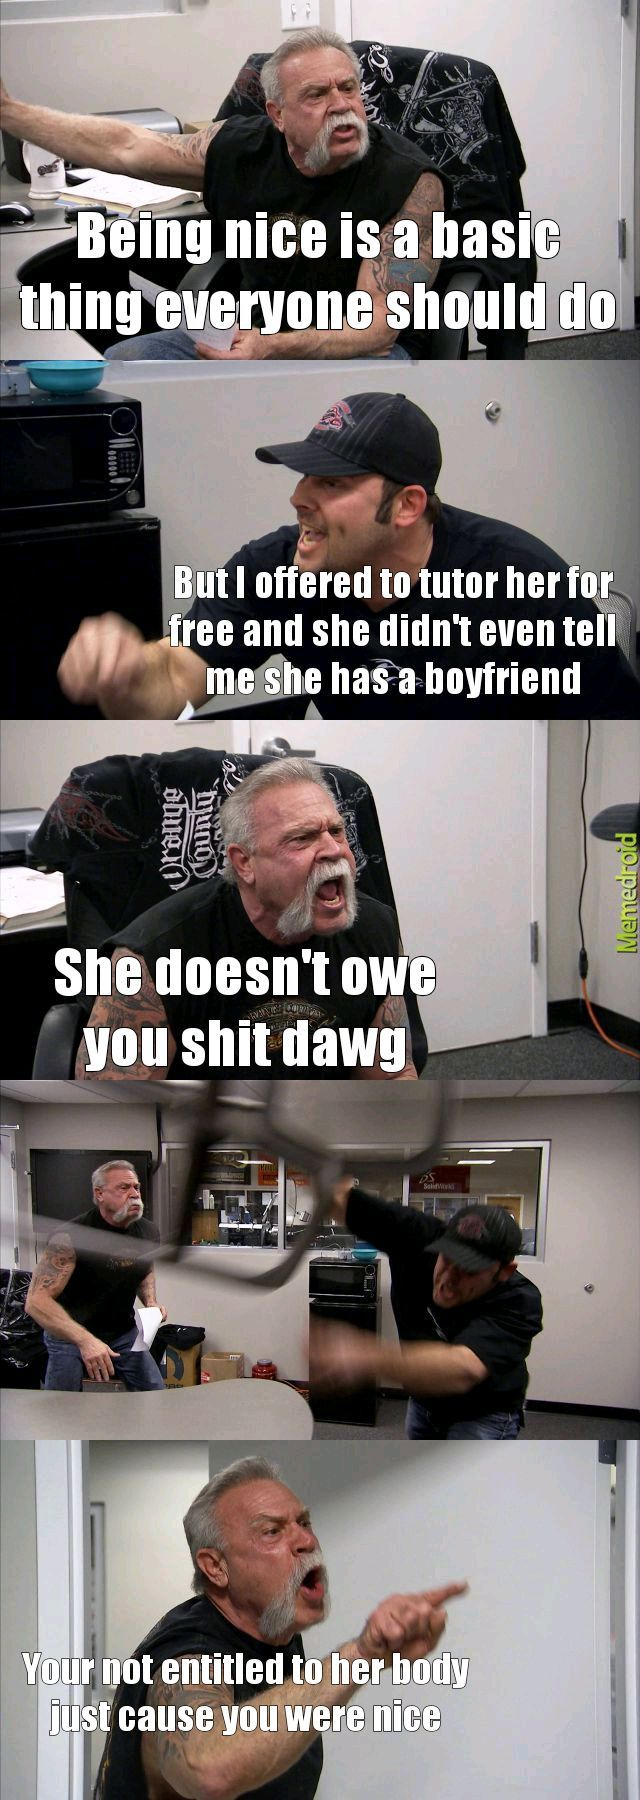 Nice guys are a different breed - meme